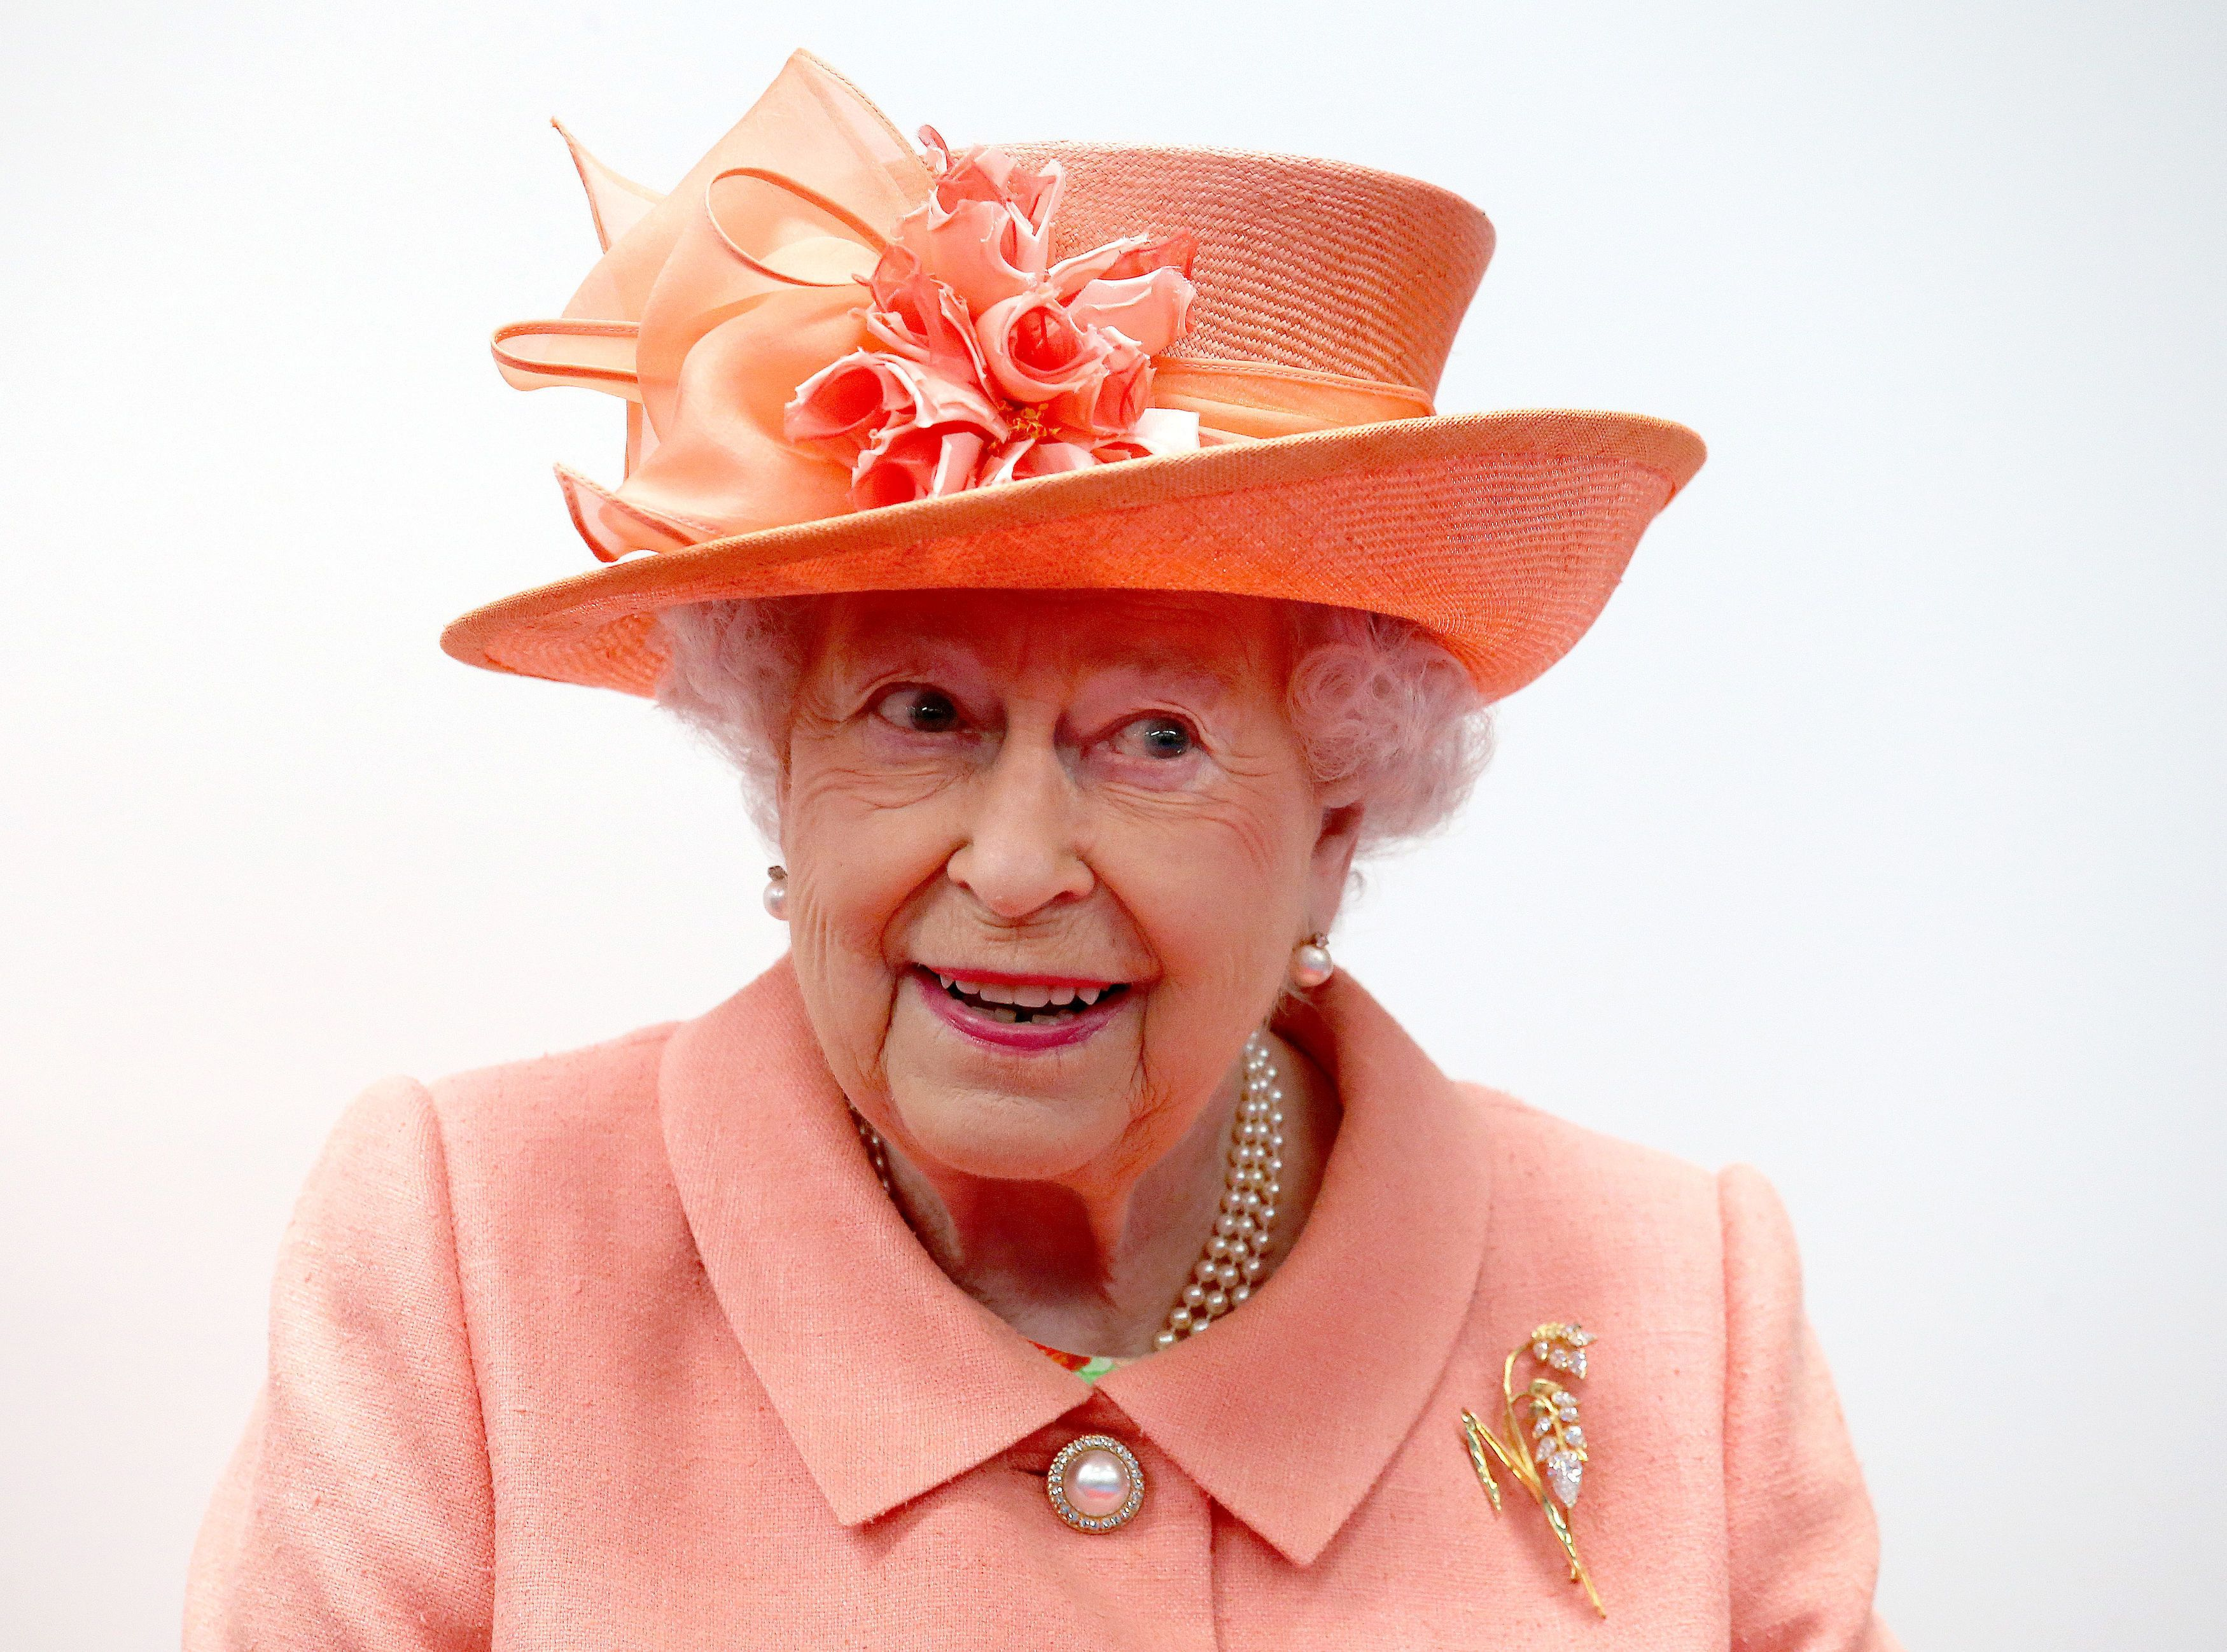 Leaked documents have revealed that the Queen's private estate invested £10 million in offshore